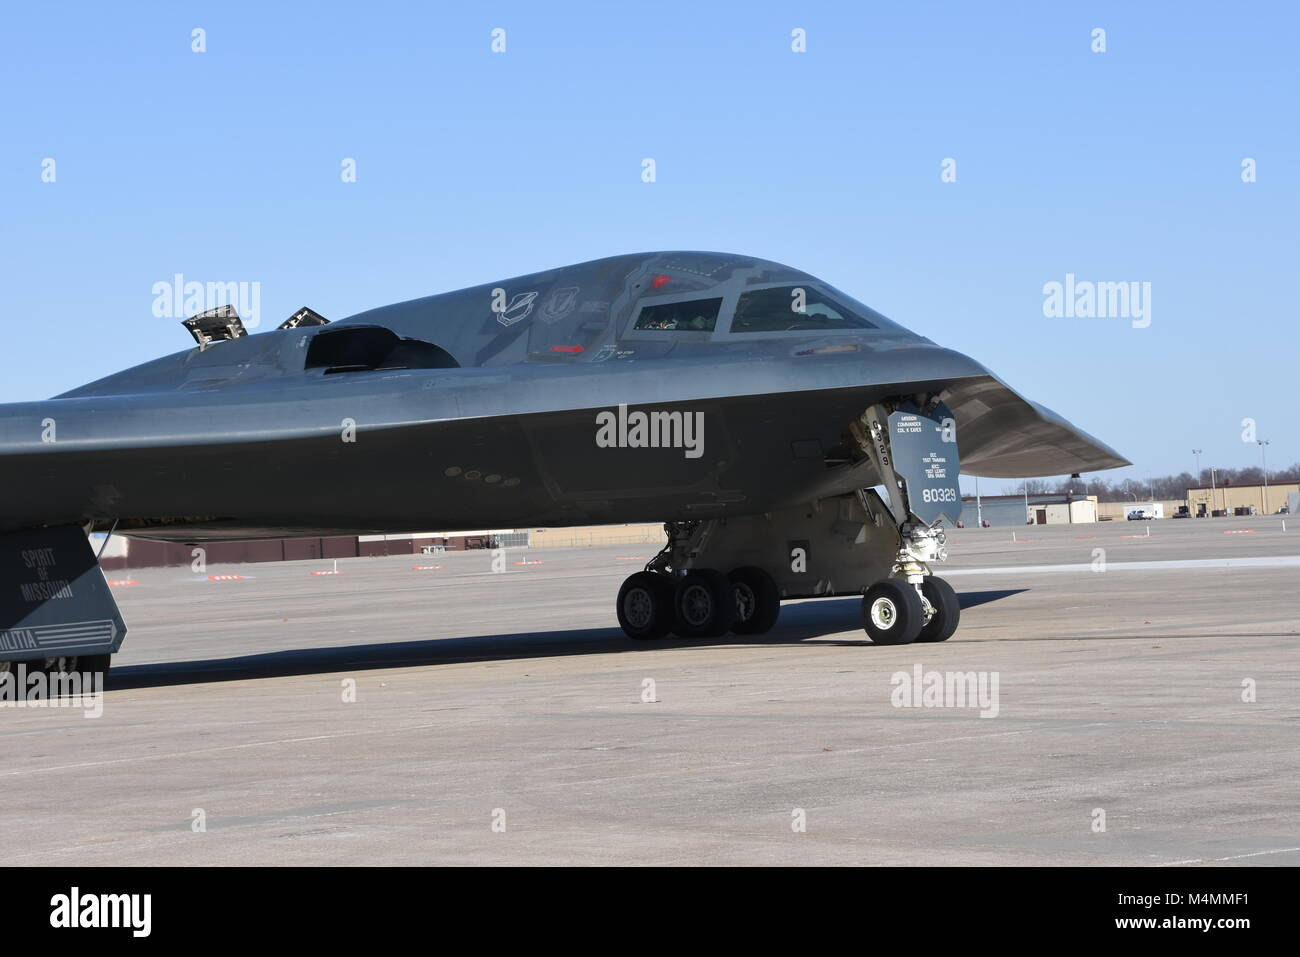 The Spirit of Missouri, the B-2 Flagship of the Missouri Air National Guard's 131st Bomb Wing, returns from a recent Stock Photo